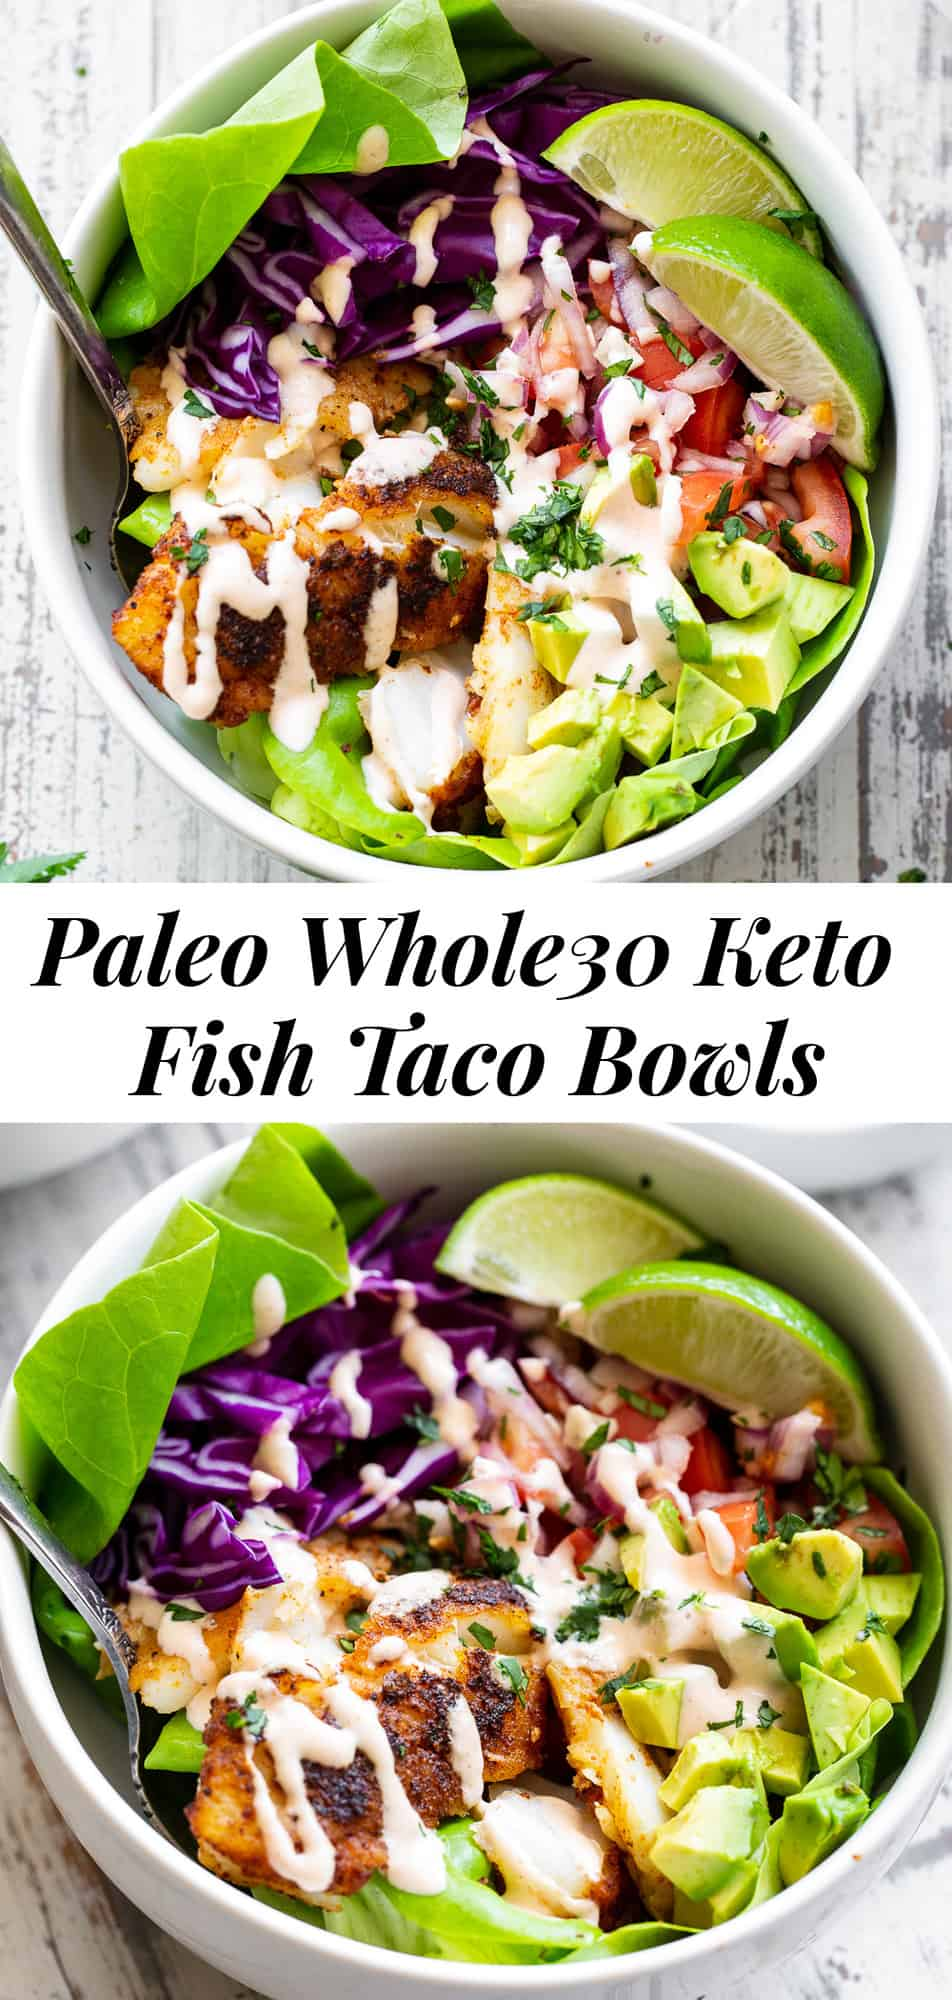 These healthy fish taco bowls are easy to prepare and packed with flavor! Perfectly seasoned and tender, flaky fish with a quick salsa, addicting sauce, avocados and veggies. These taco bowls are paleo, Whole30, and keto friendly. Perfect for a light quick dinner any day of the week.